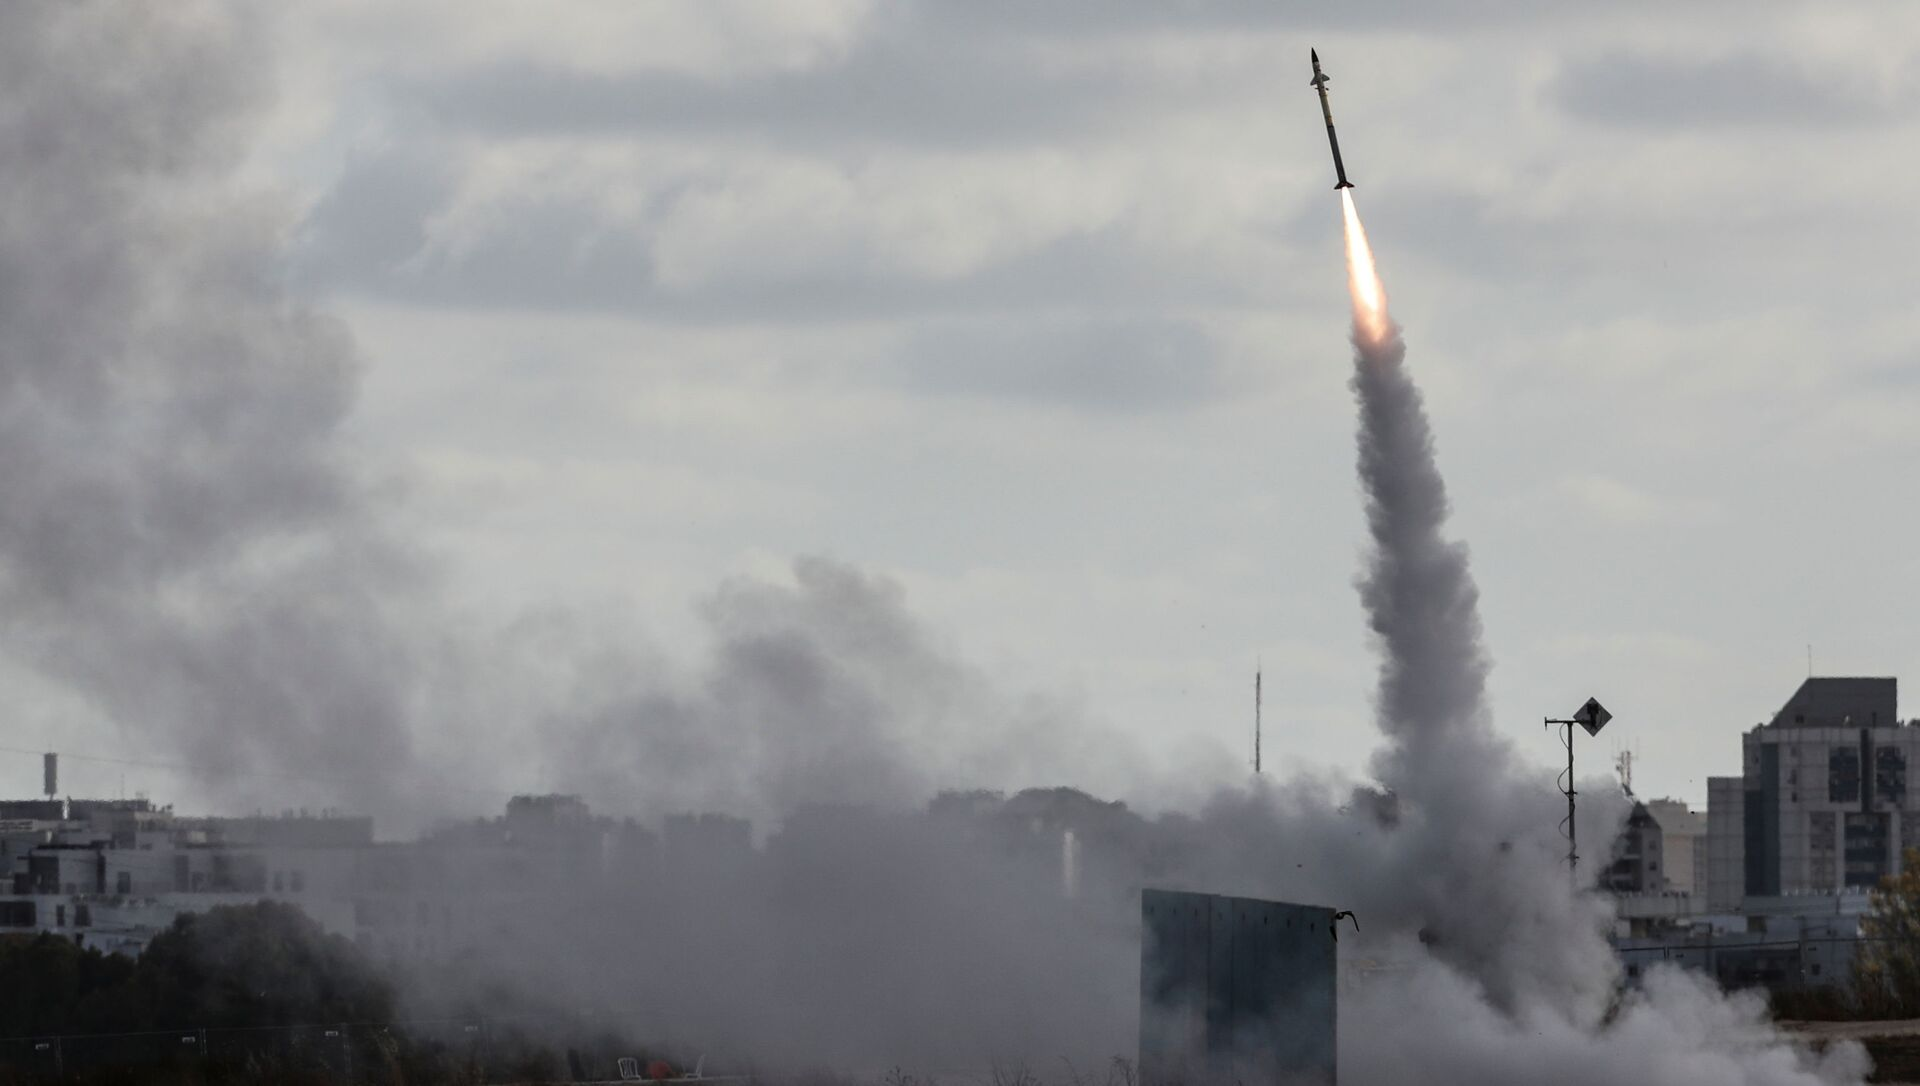 Israel's Iron Dome anti-missile system fires to intercept a rocket launched from the Gaza Strip towards Israel, as seen from Ashdod, Israel May 17, 2021 - Sputnik International, 1920, 19.05.2021